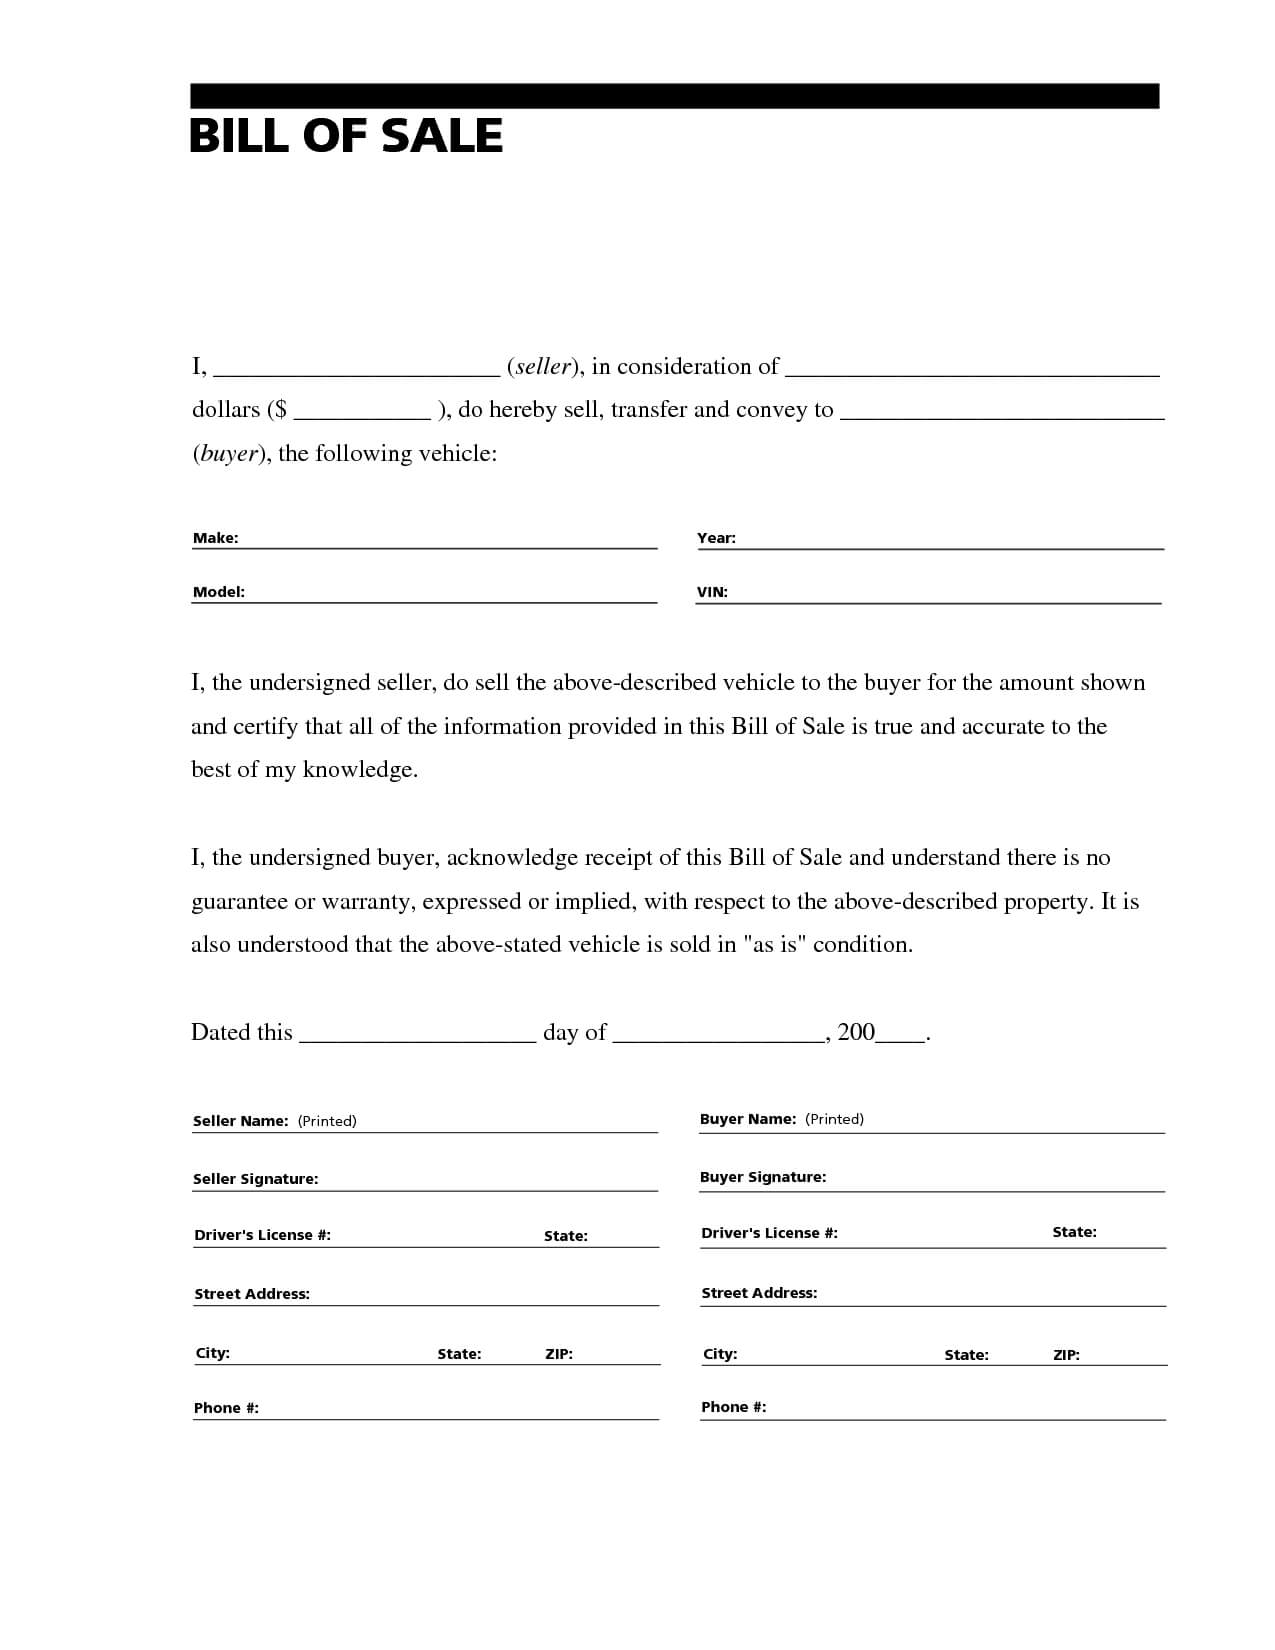 Free Vehicle Bill Of Sale Word Document - Best Of Automotive intended for Vehicle Bill Of Sale Template Word